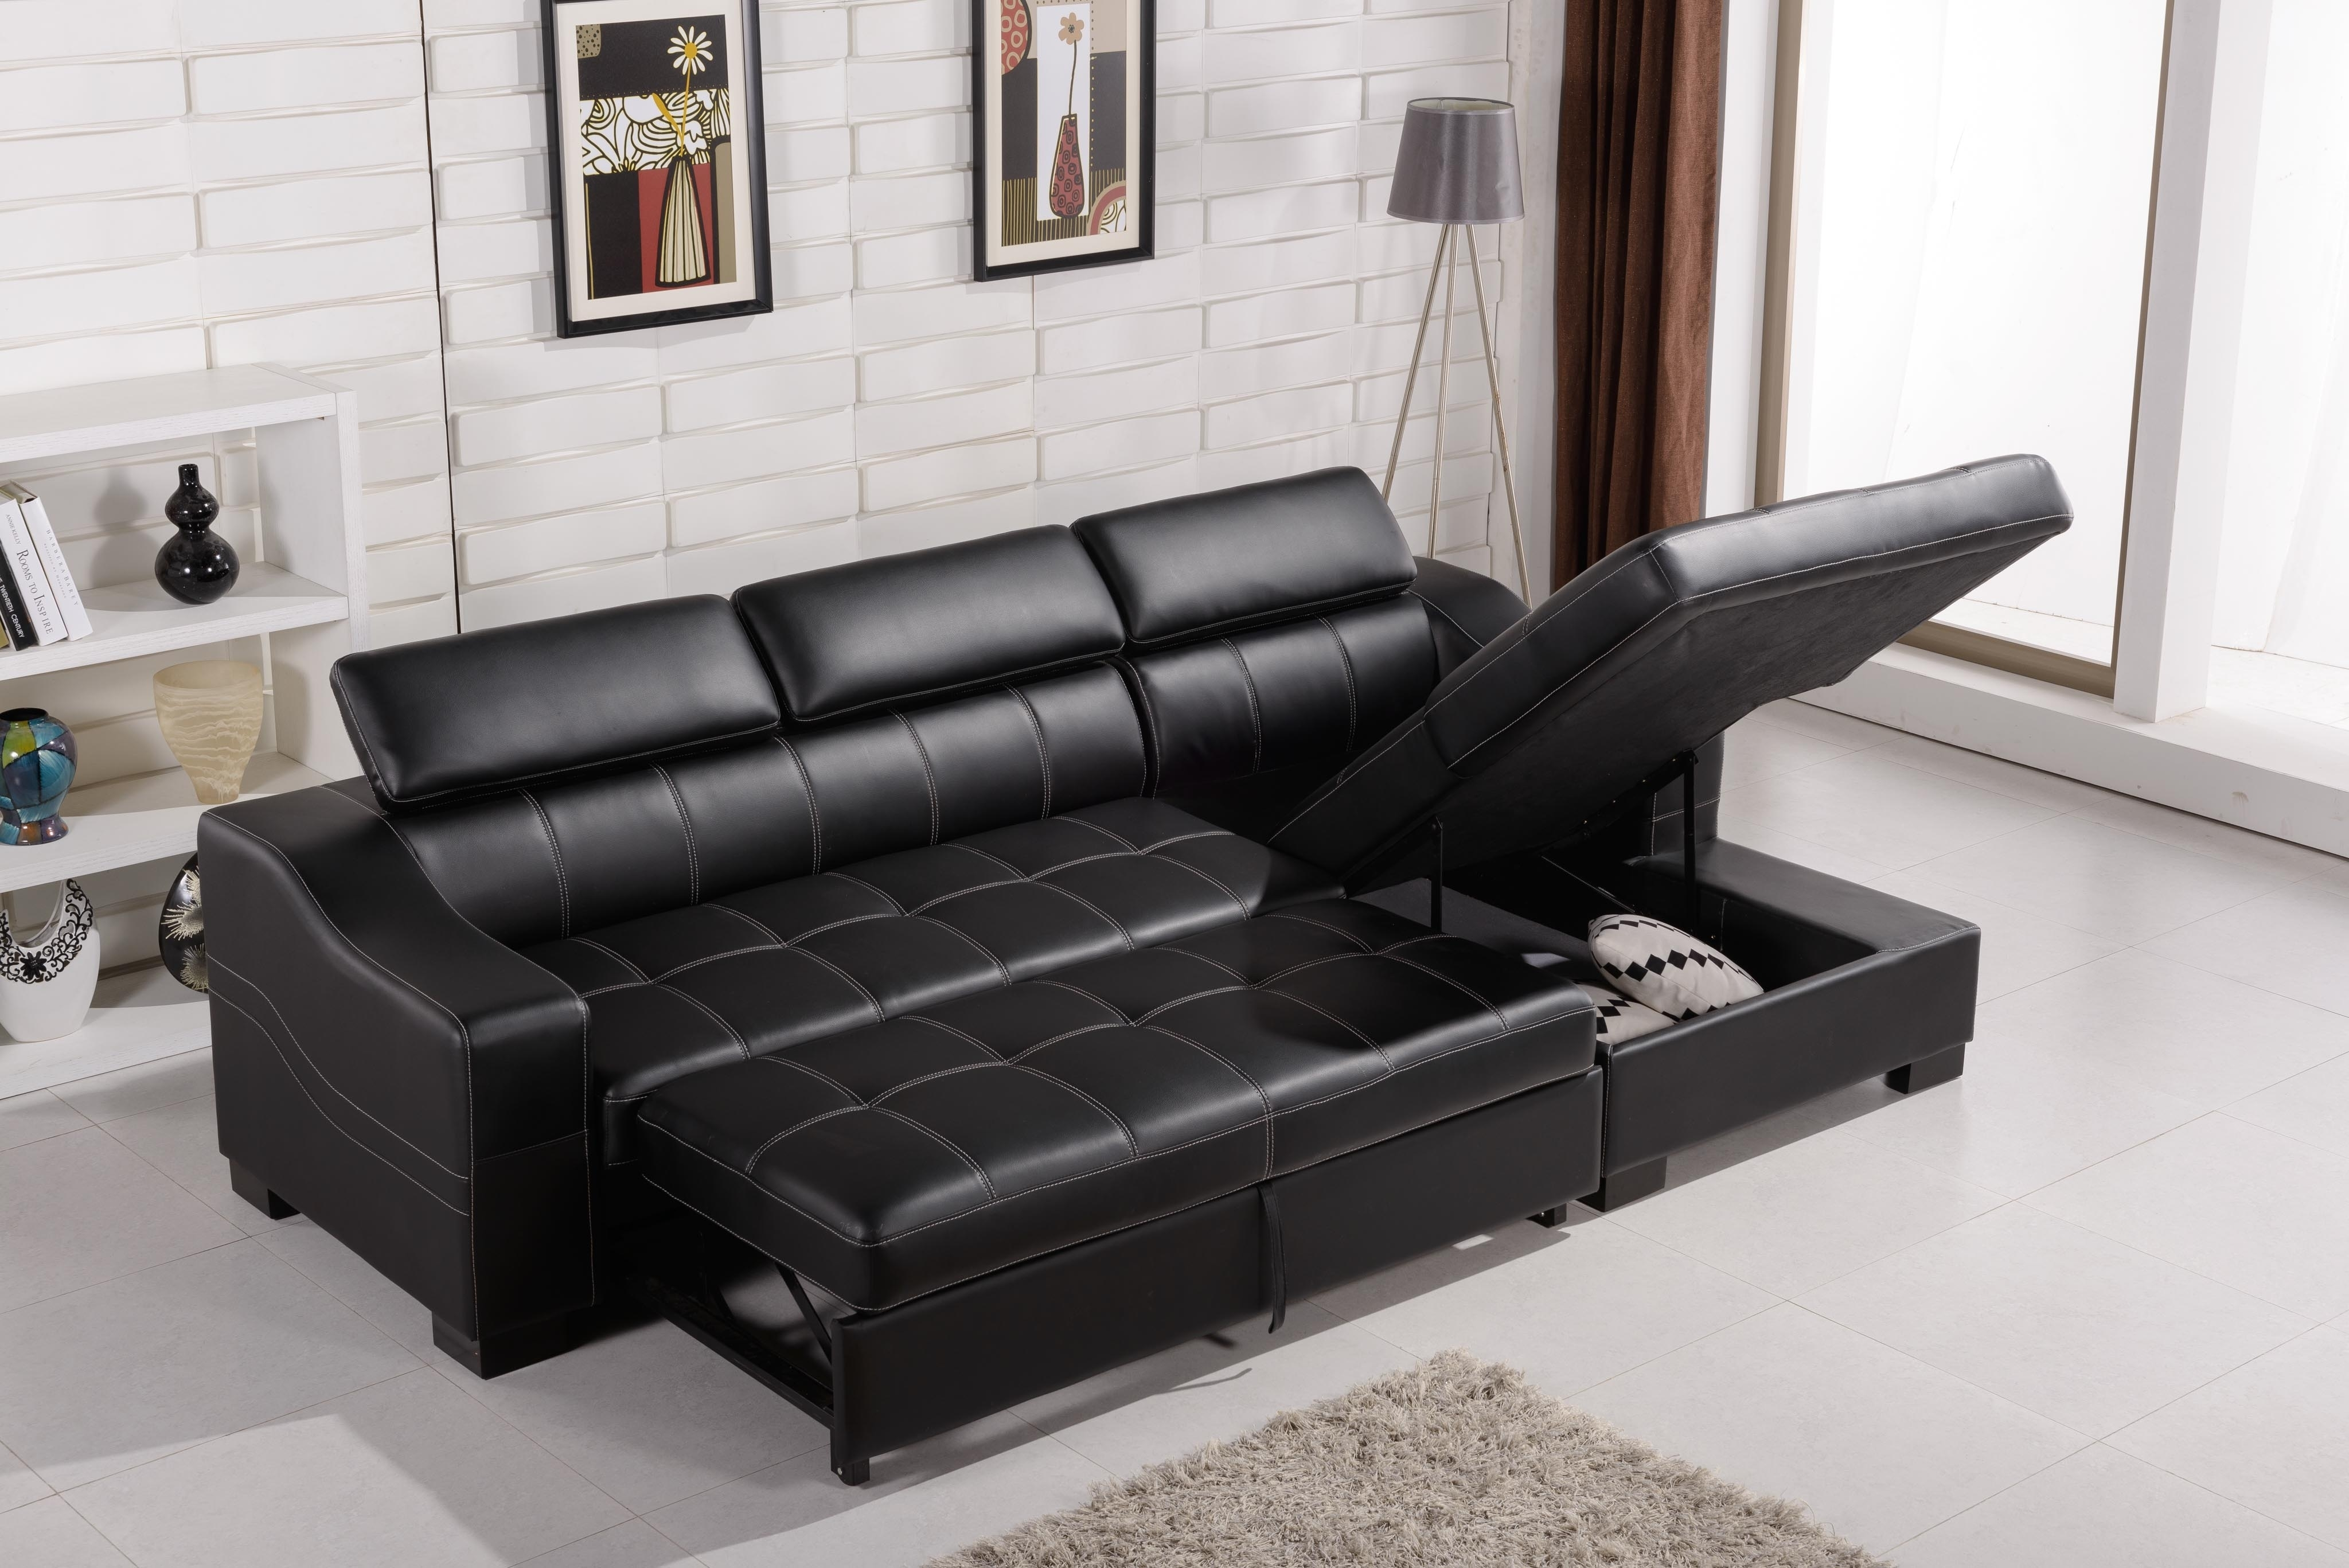 Couch That Turns Into Bed 10+ Choices Of Sectional Sofas That Turn Into Beds | Sofa